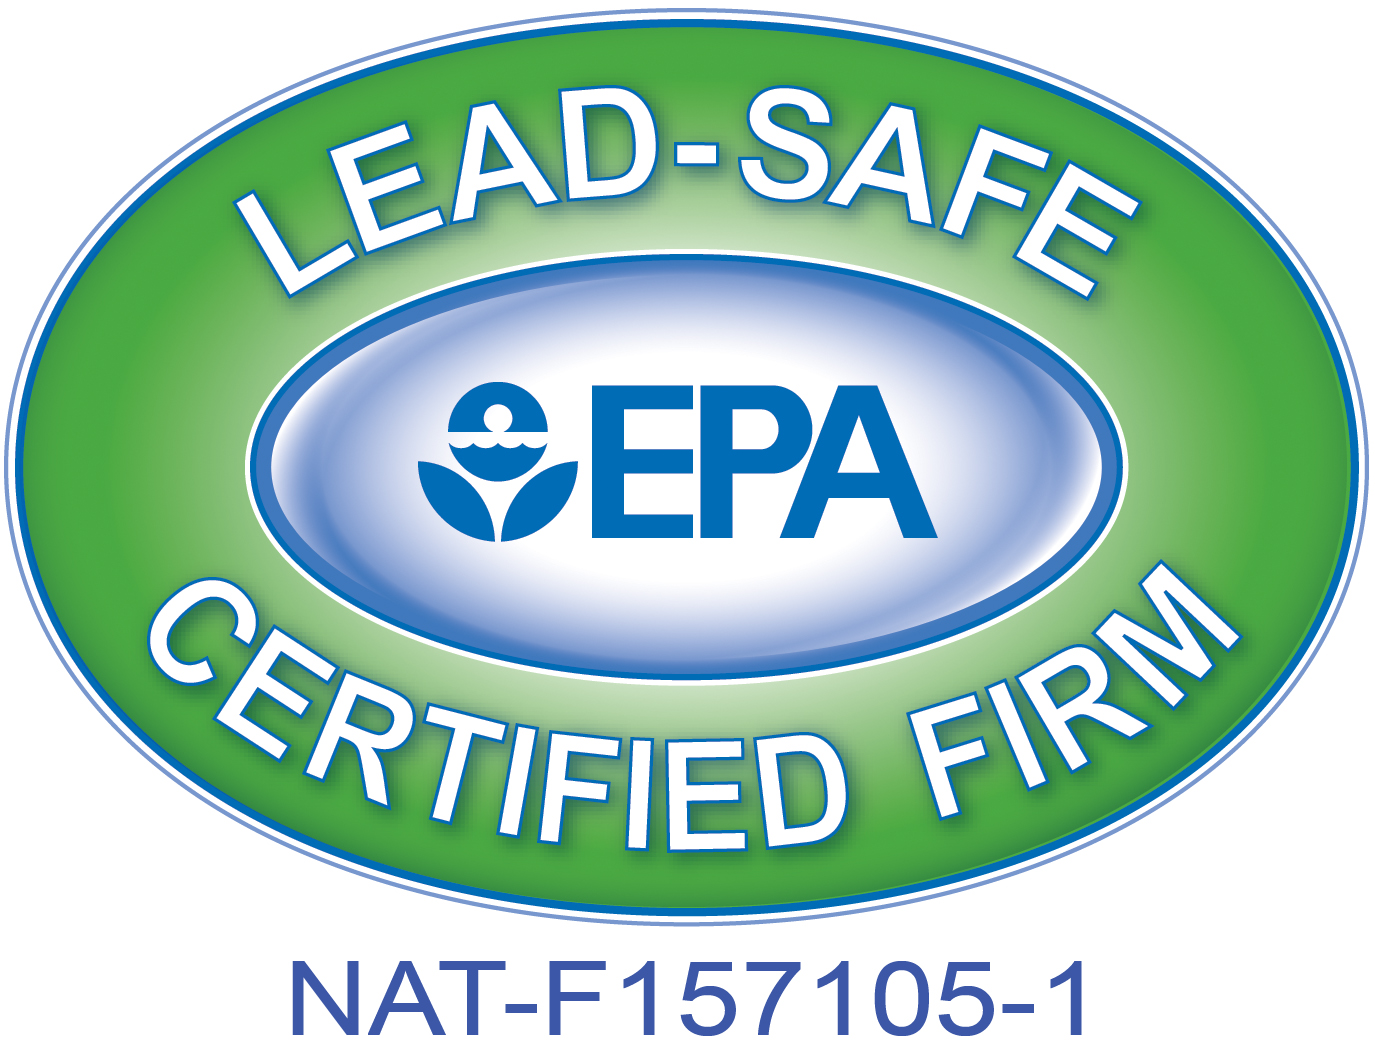 EPA Certified Firm Badge